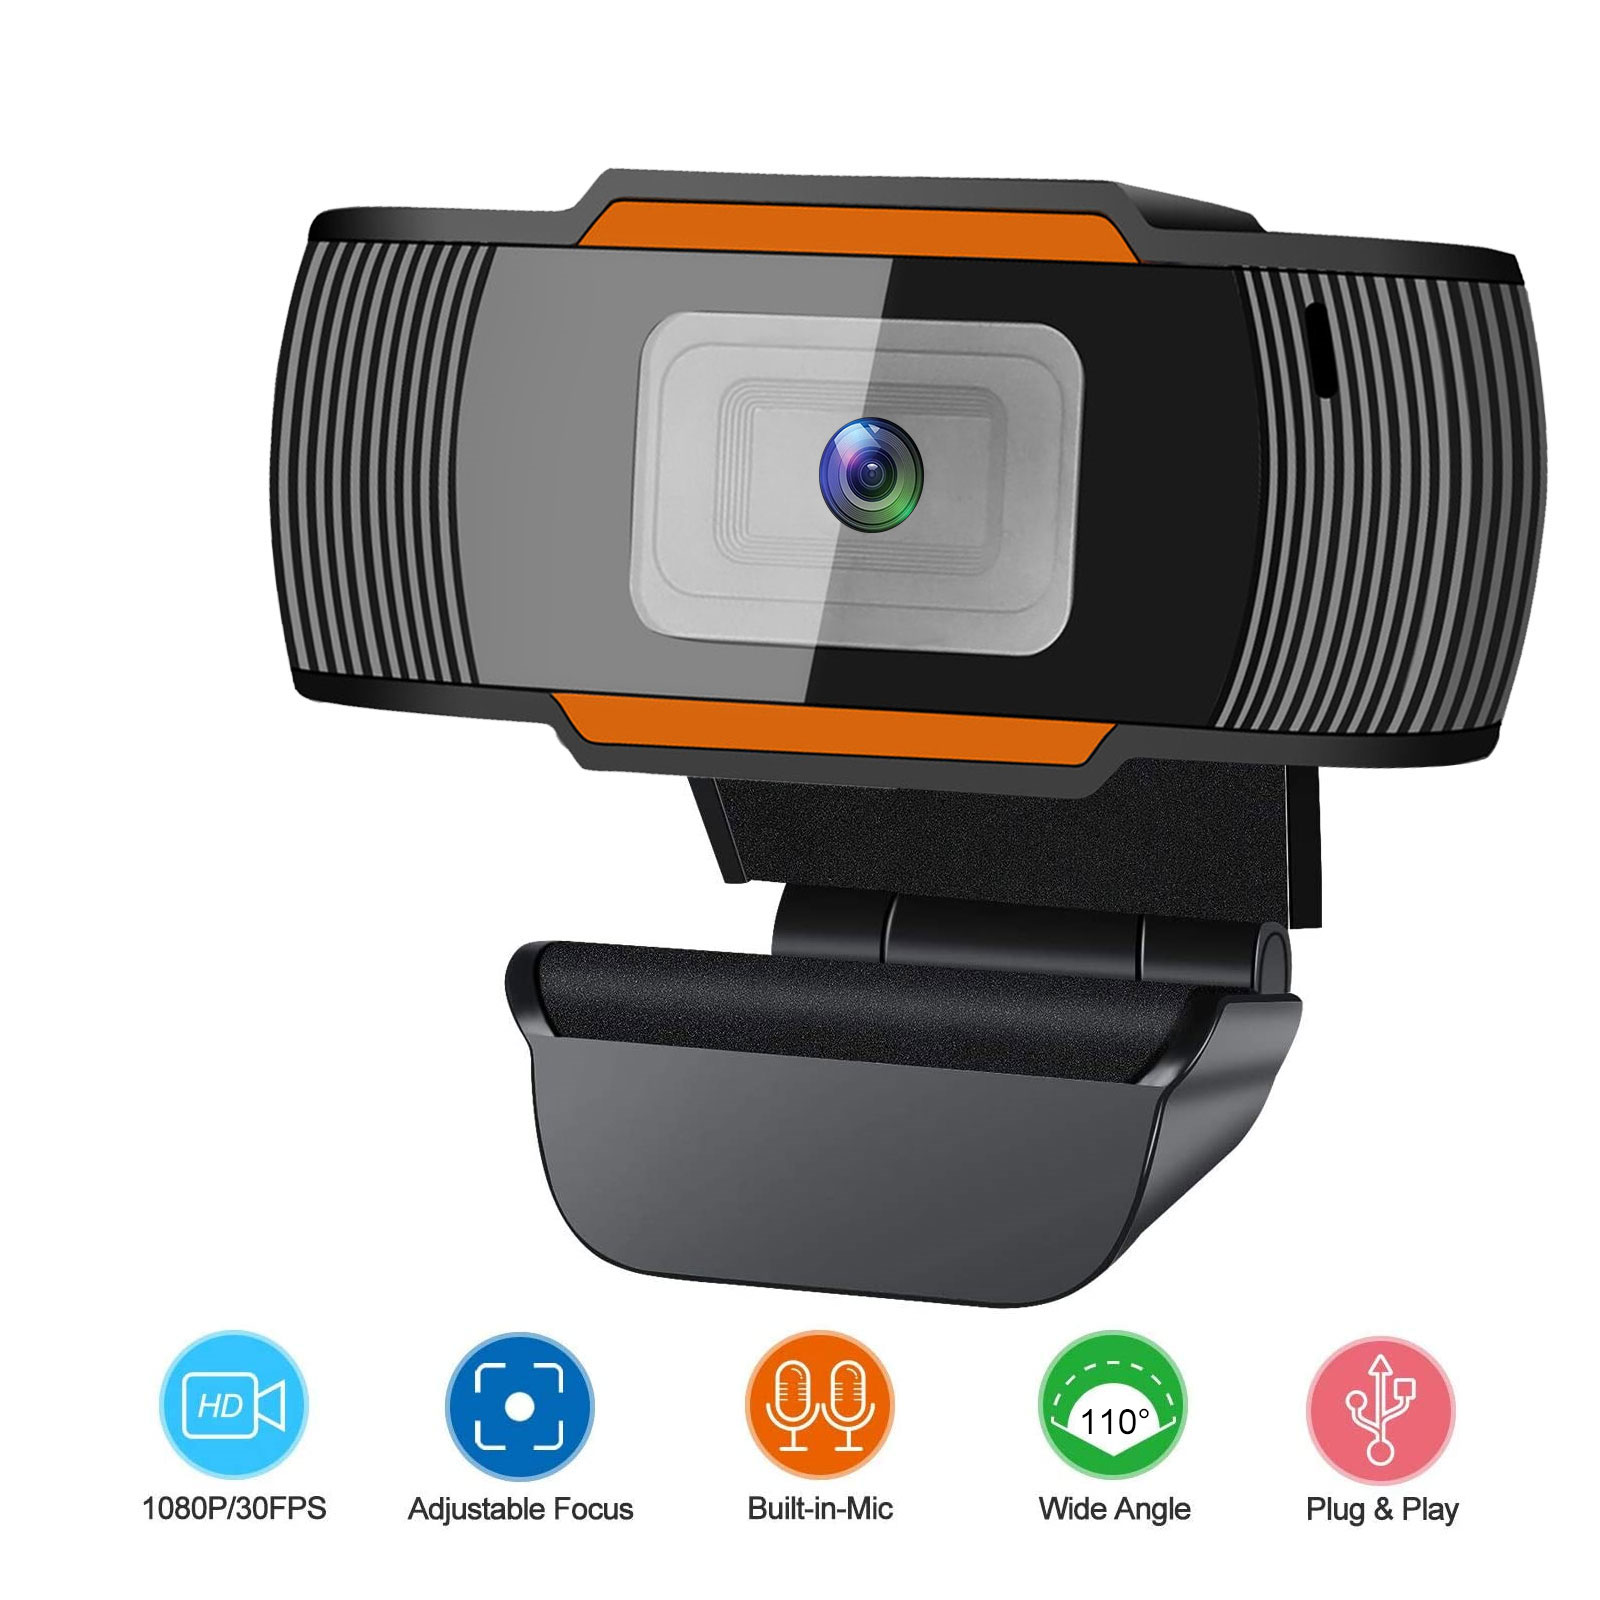 1280x1080 HD Webcam with Microphone for Desktop PC Laptop Video Calling Recording Conferencing Skype Zoom Meeting